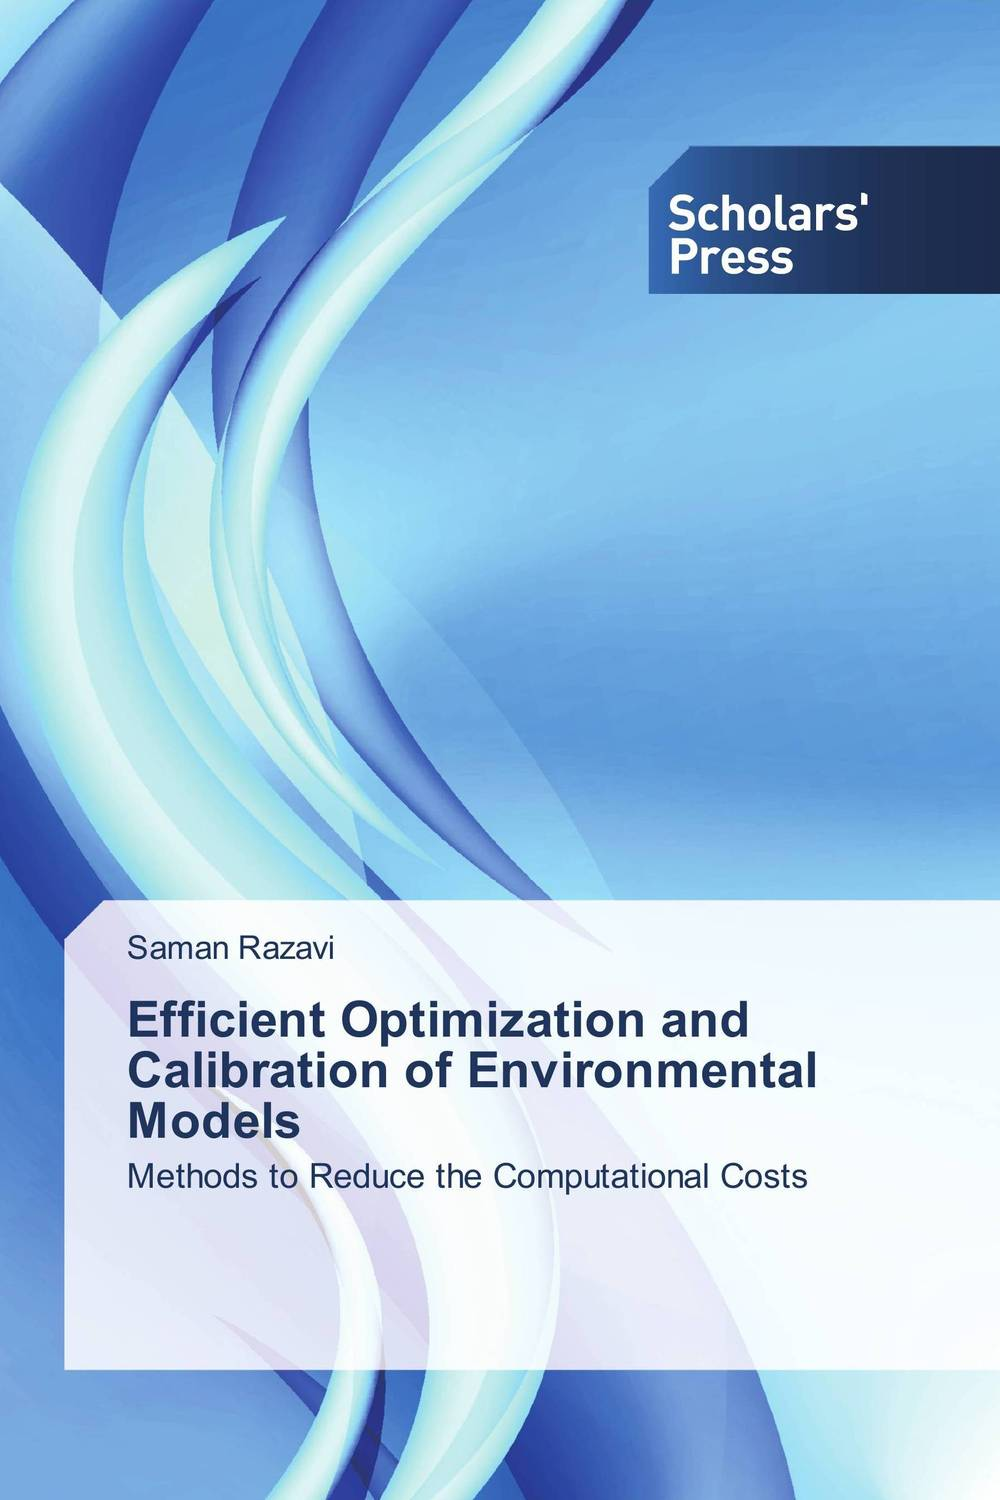 Efficient Optimization and Calibration of Environmental Models